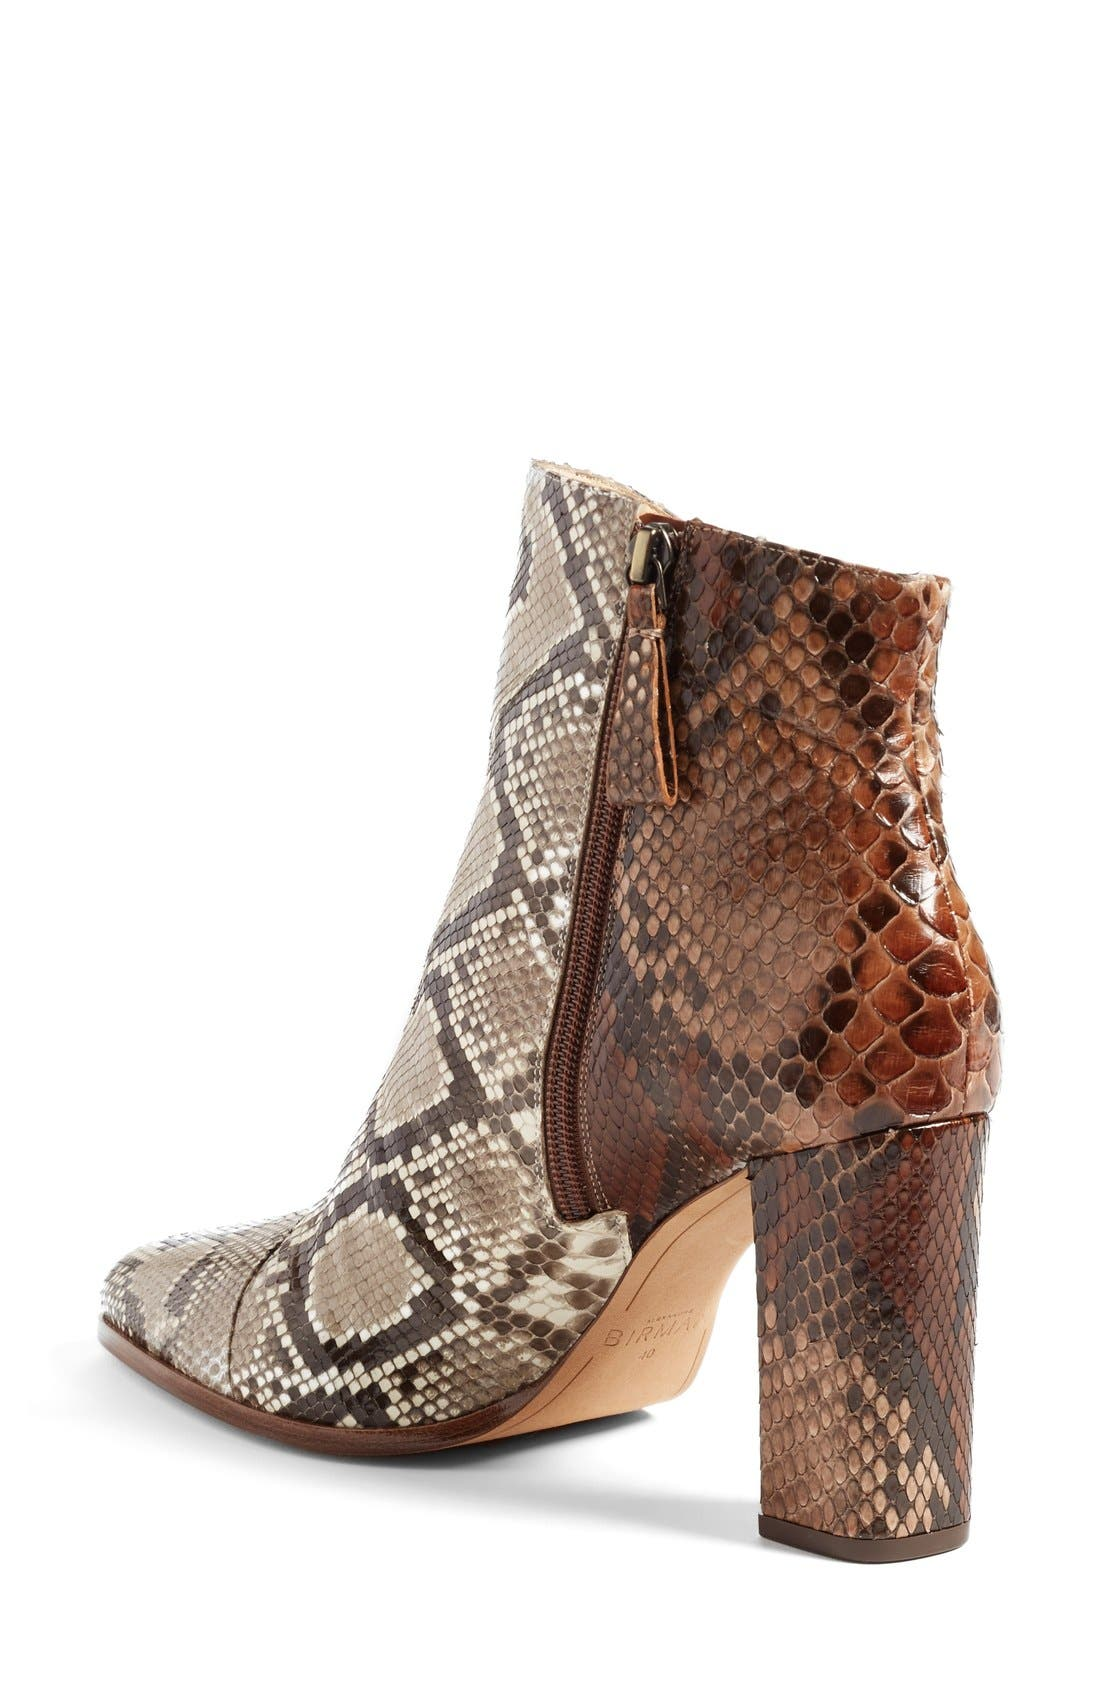 'Kendal' Genuine Python Skin Pointy Toe Bootie,                             Alternate thumbnail 4, color,                             250